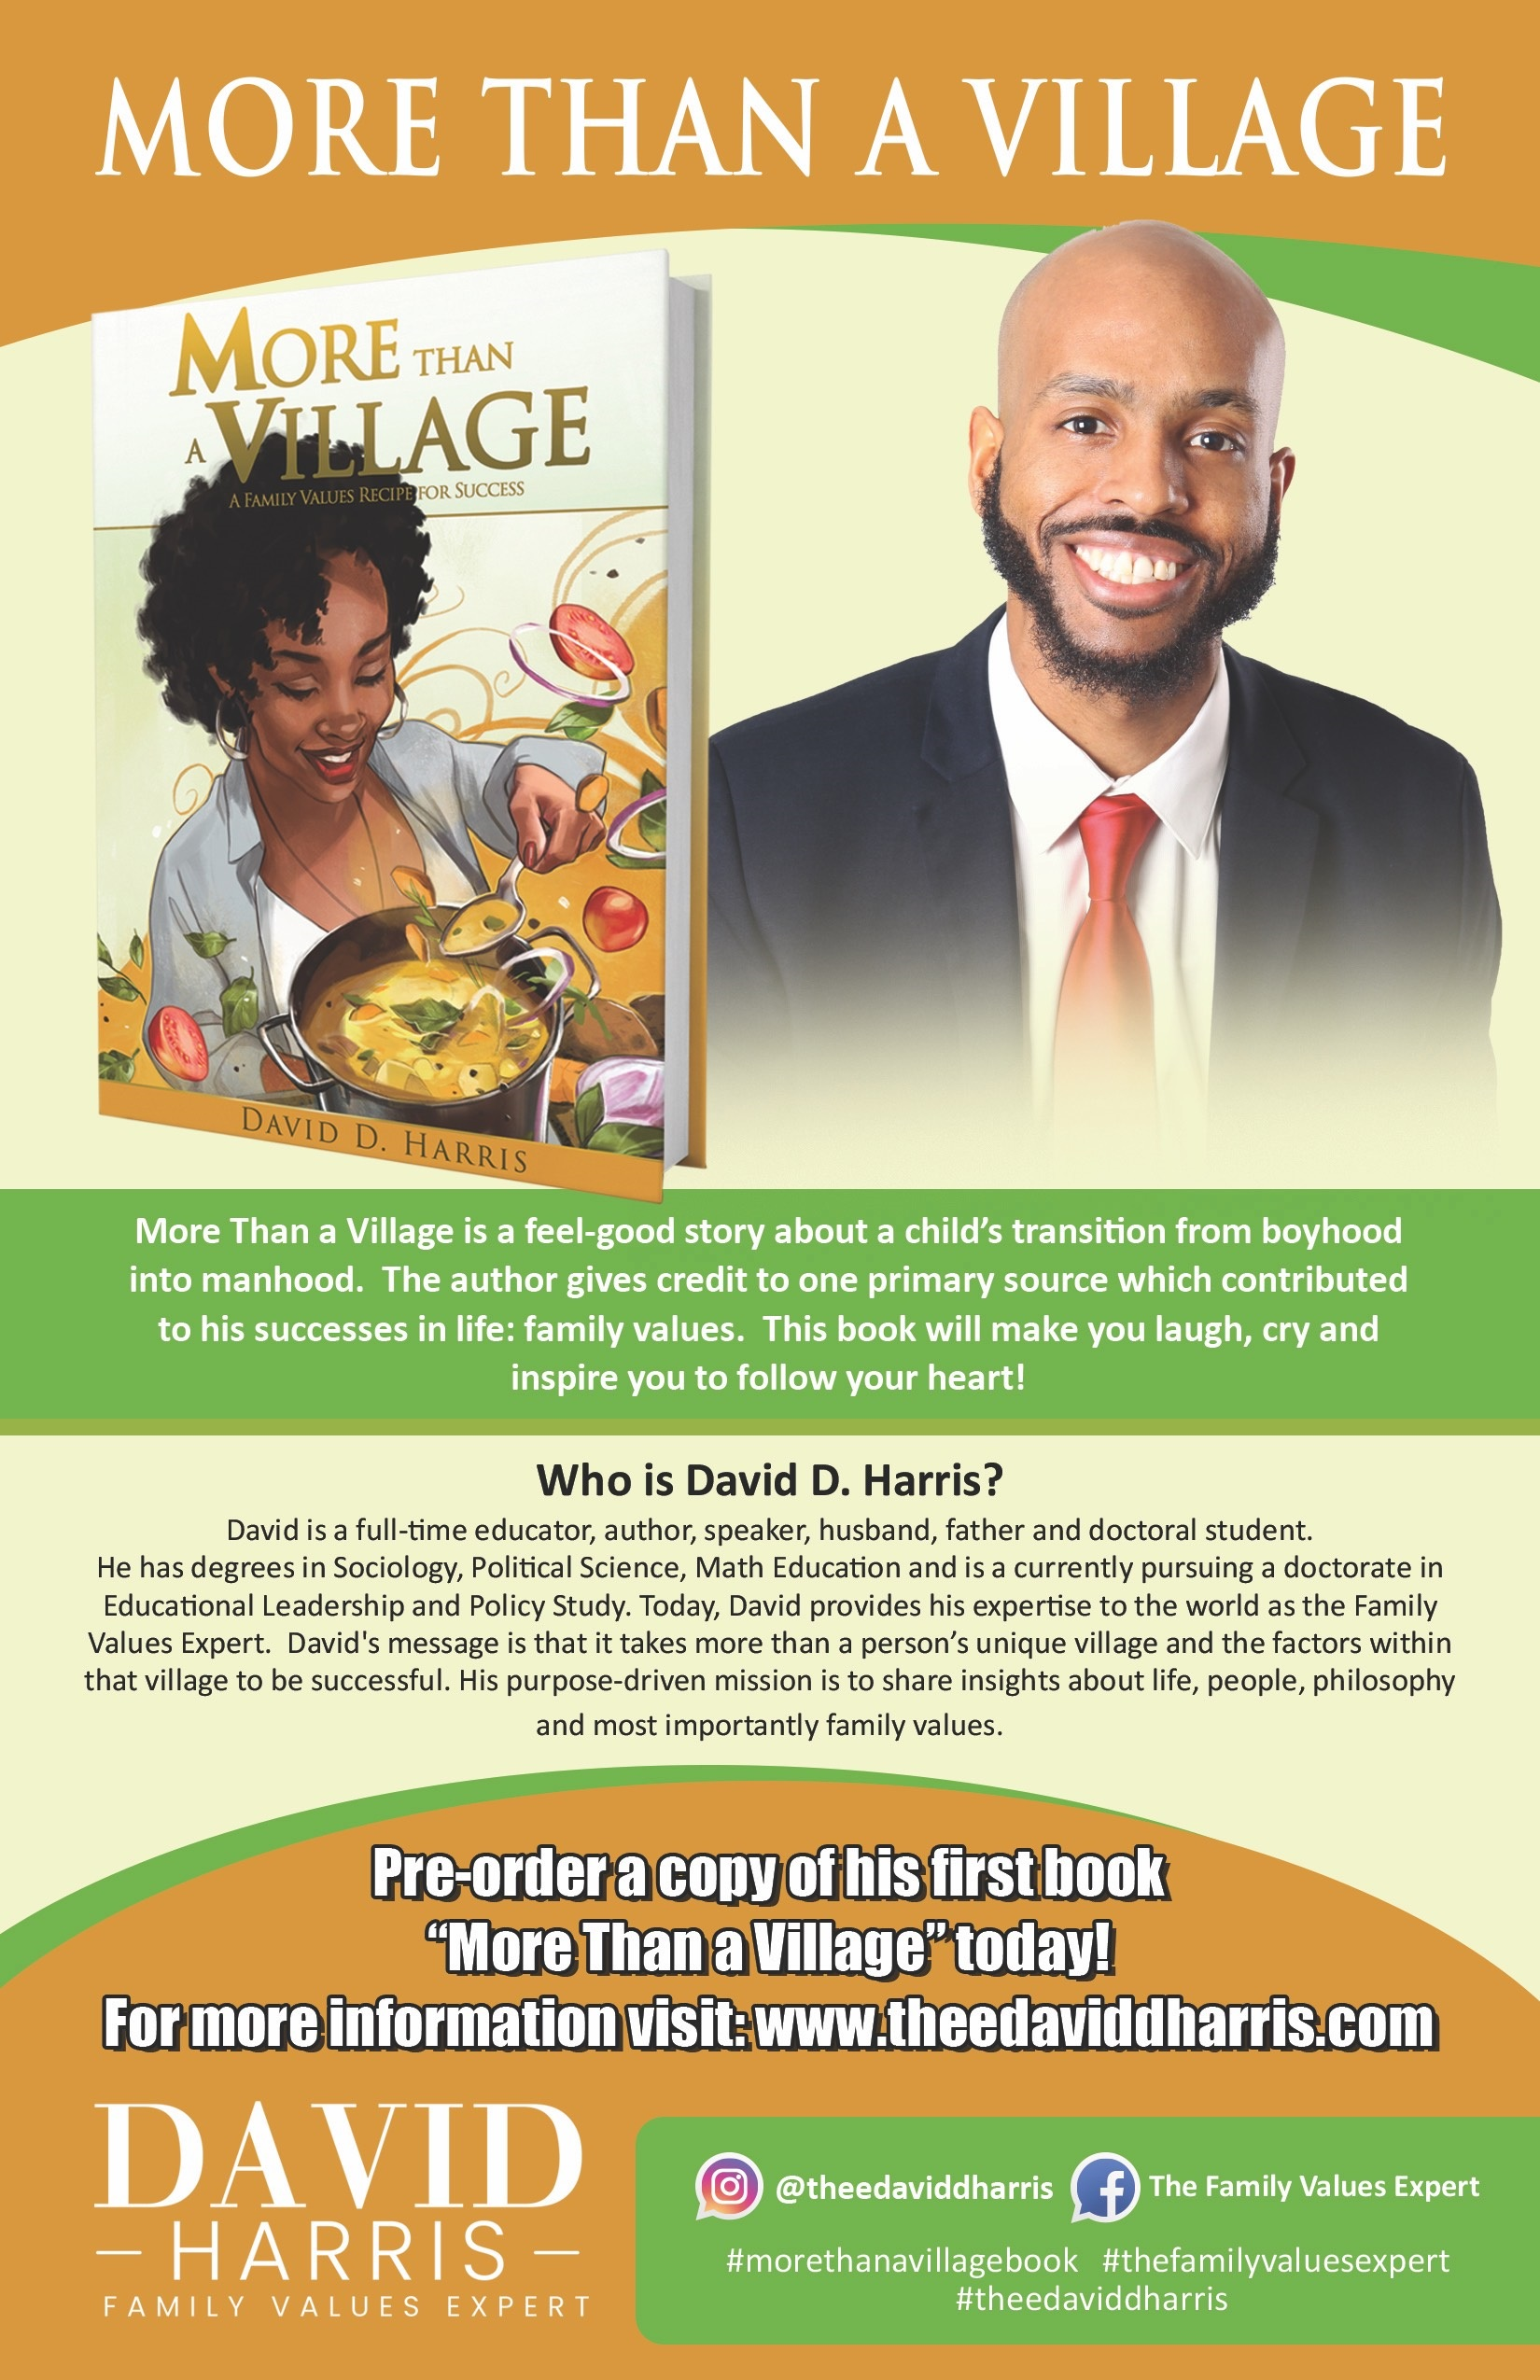 David D. Harris to Release The Ultimate Guidebook on Family Values 6